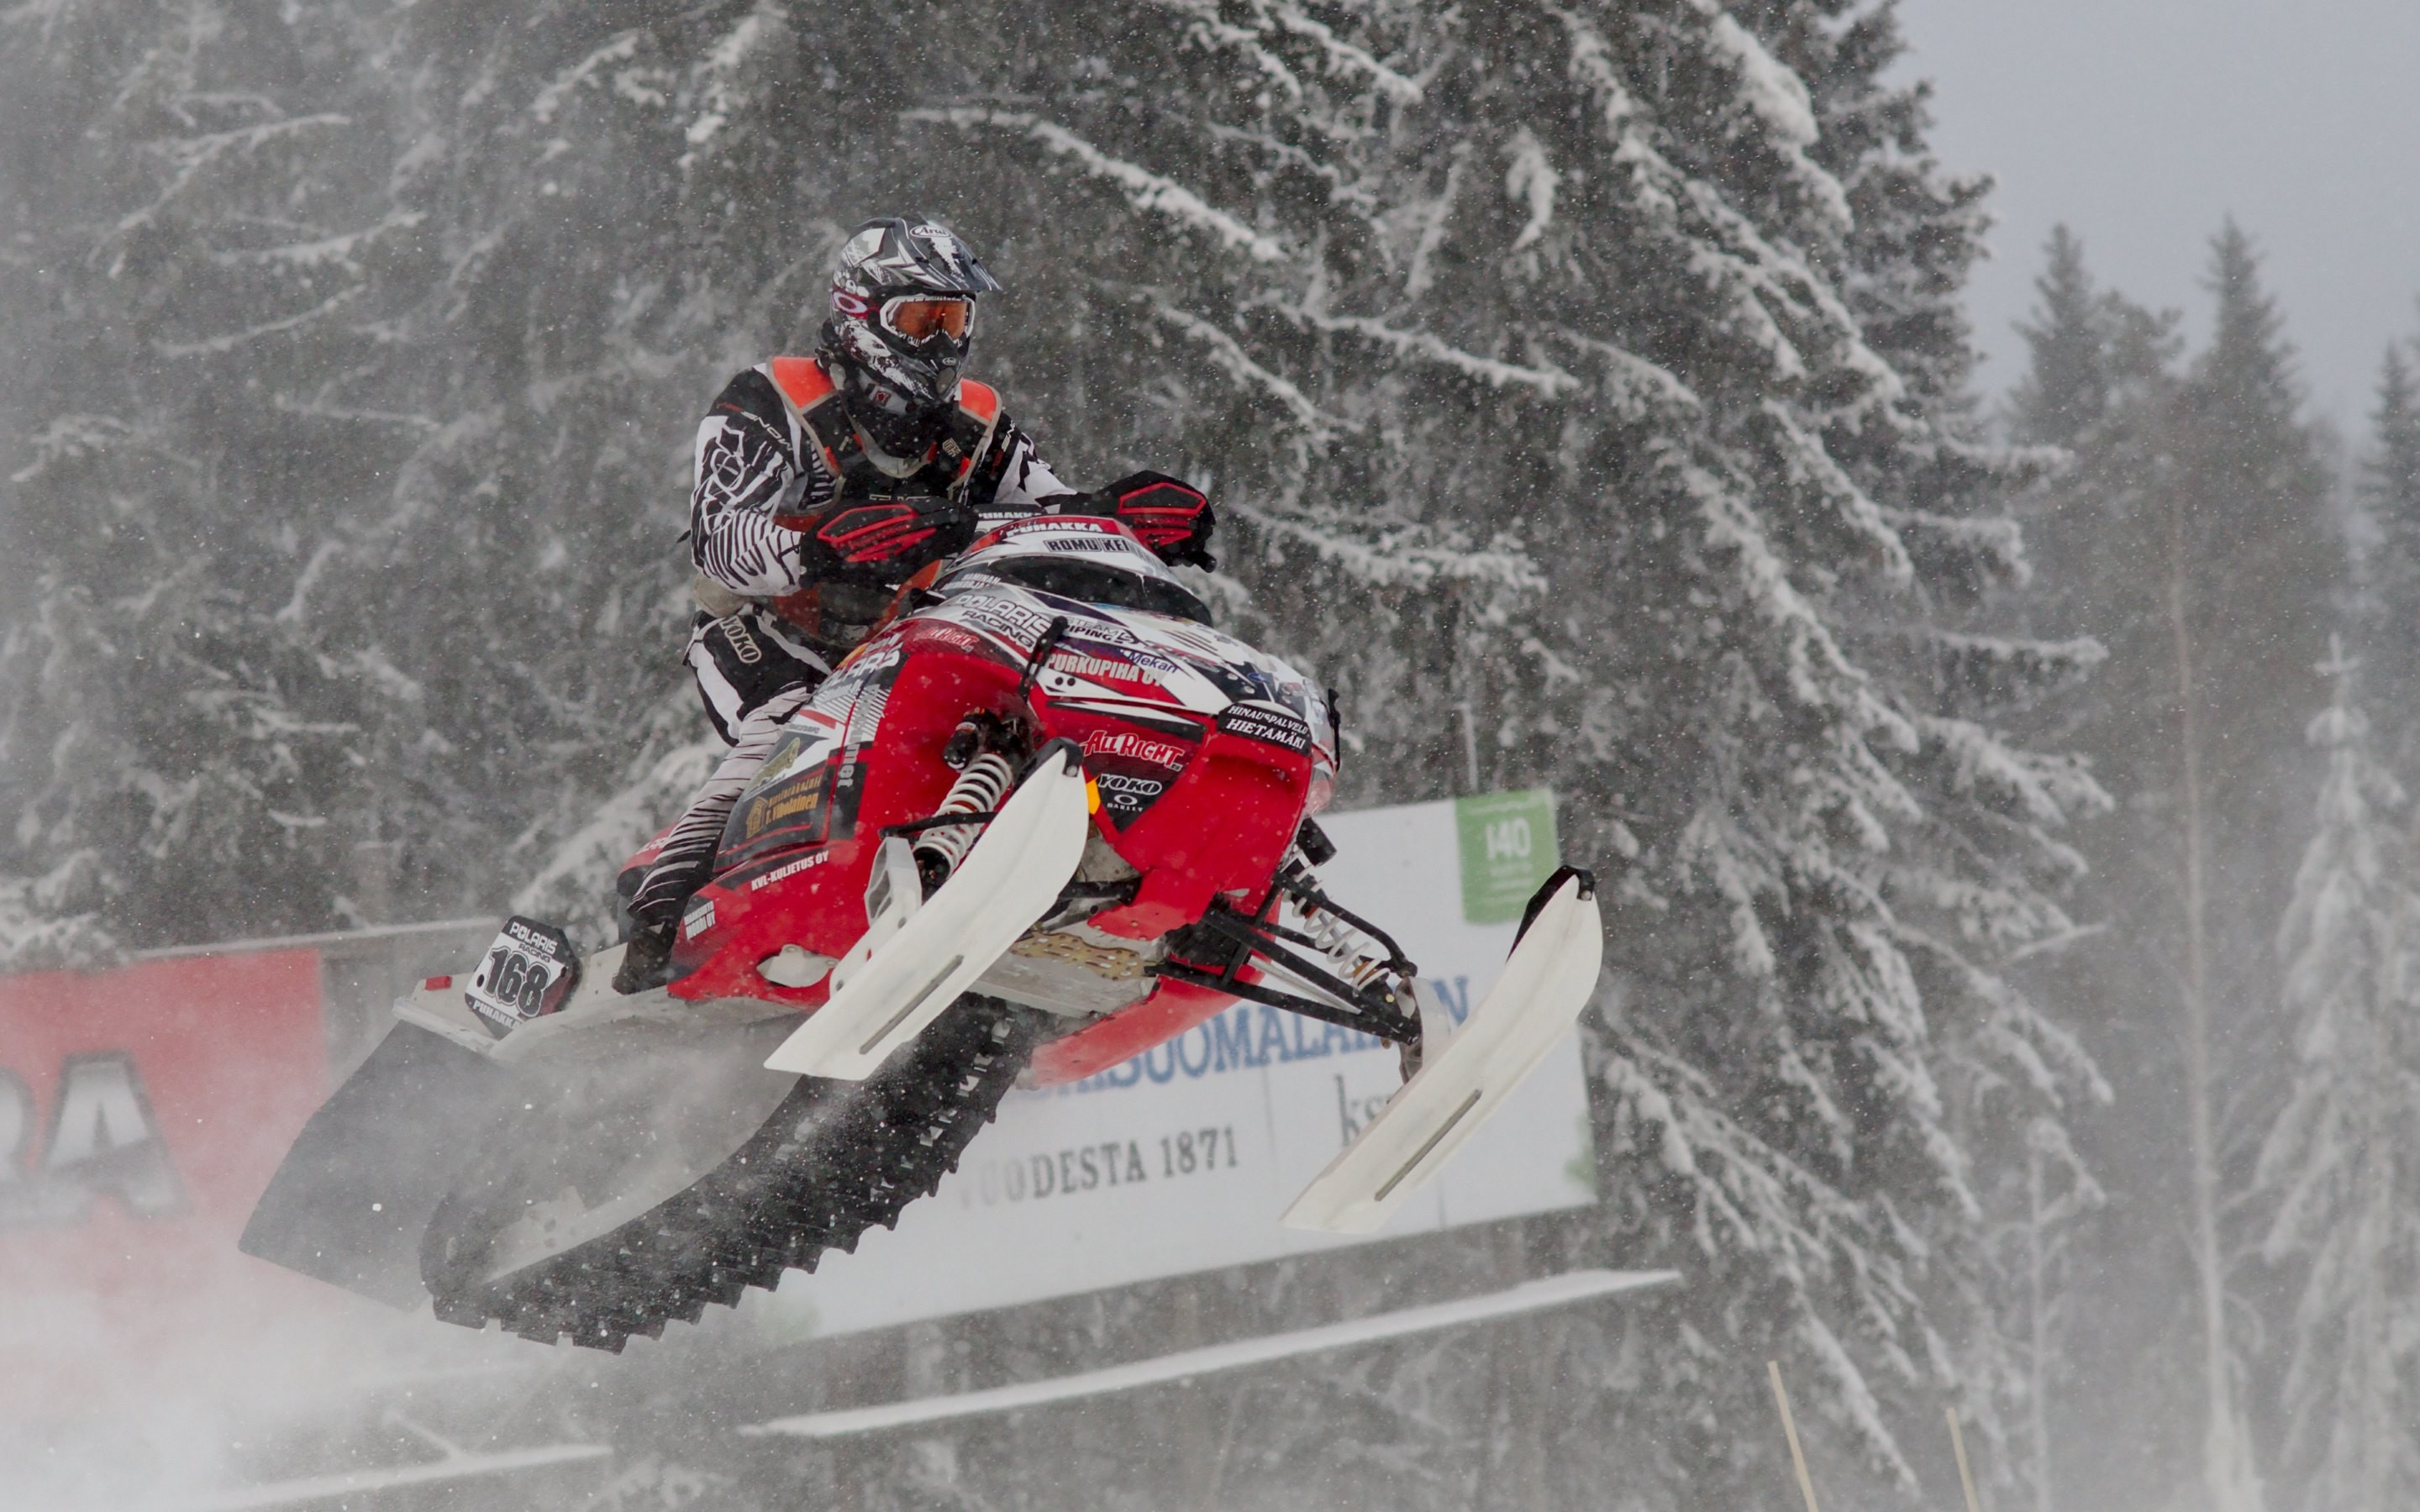 2880x1800 All posts tagged Snowmobile Wallpapers